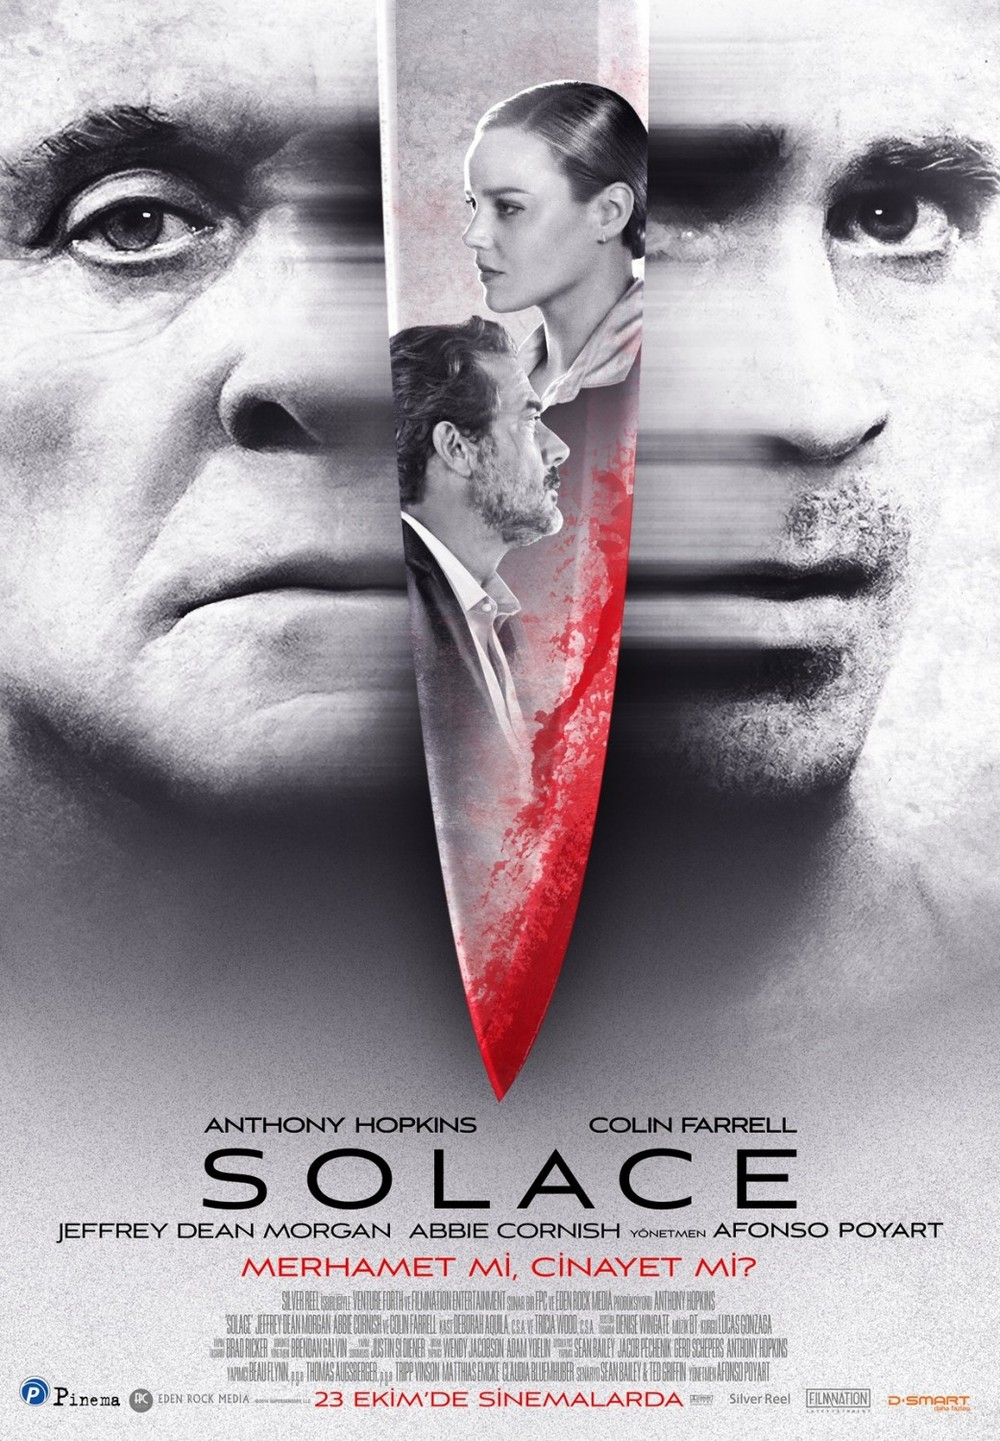 Solace release date in Melbourne